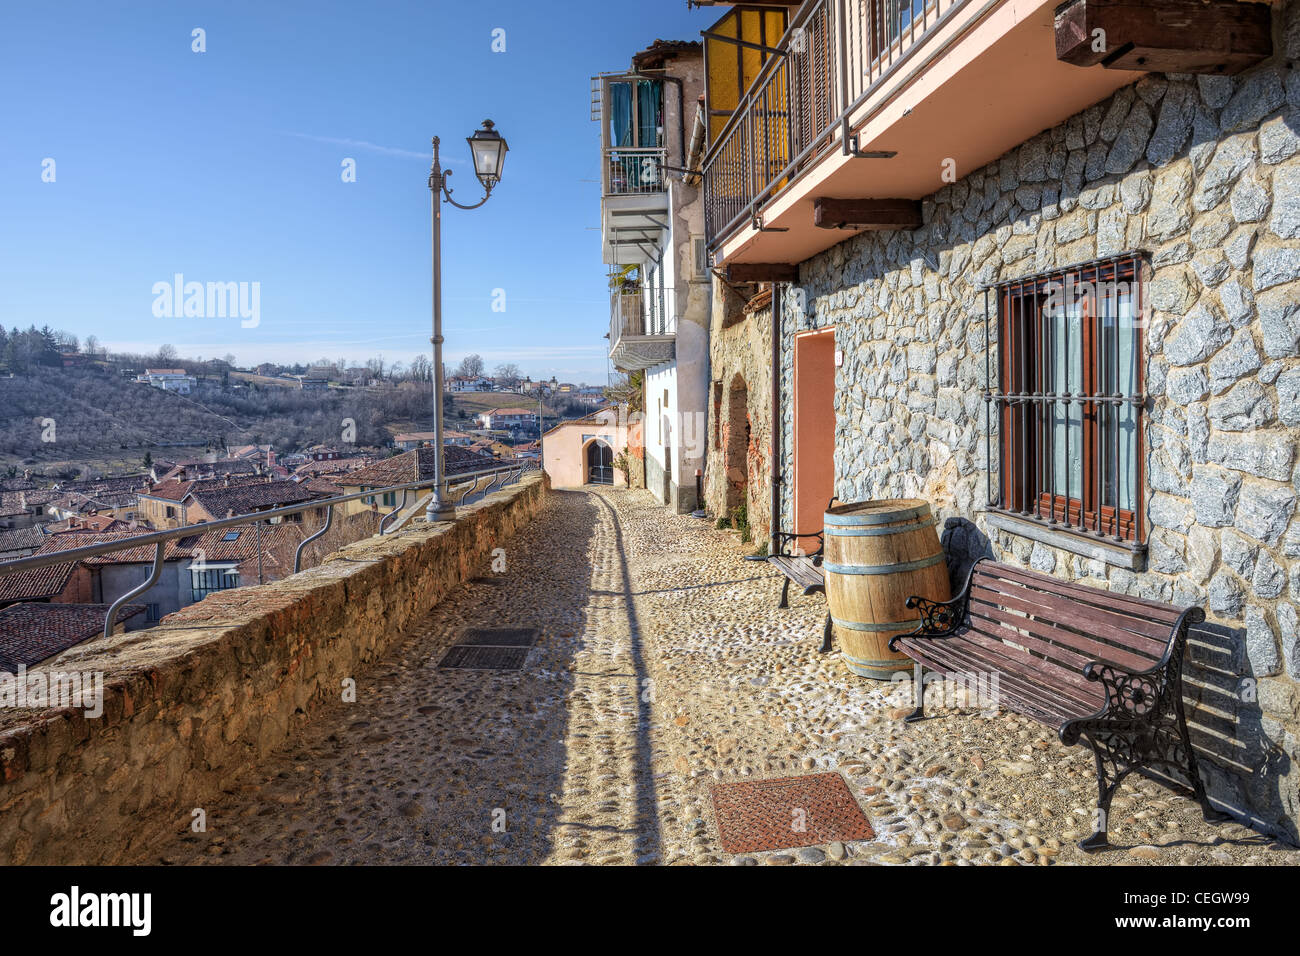 Narrow stone paved street and old houses in town of La Morra, Northern Italy. - Stock Image